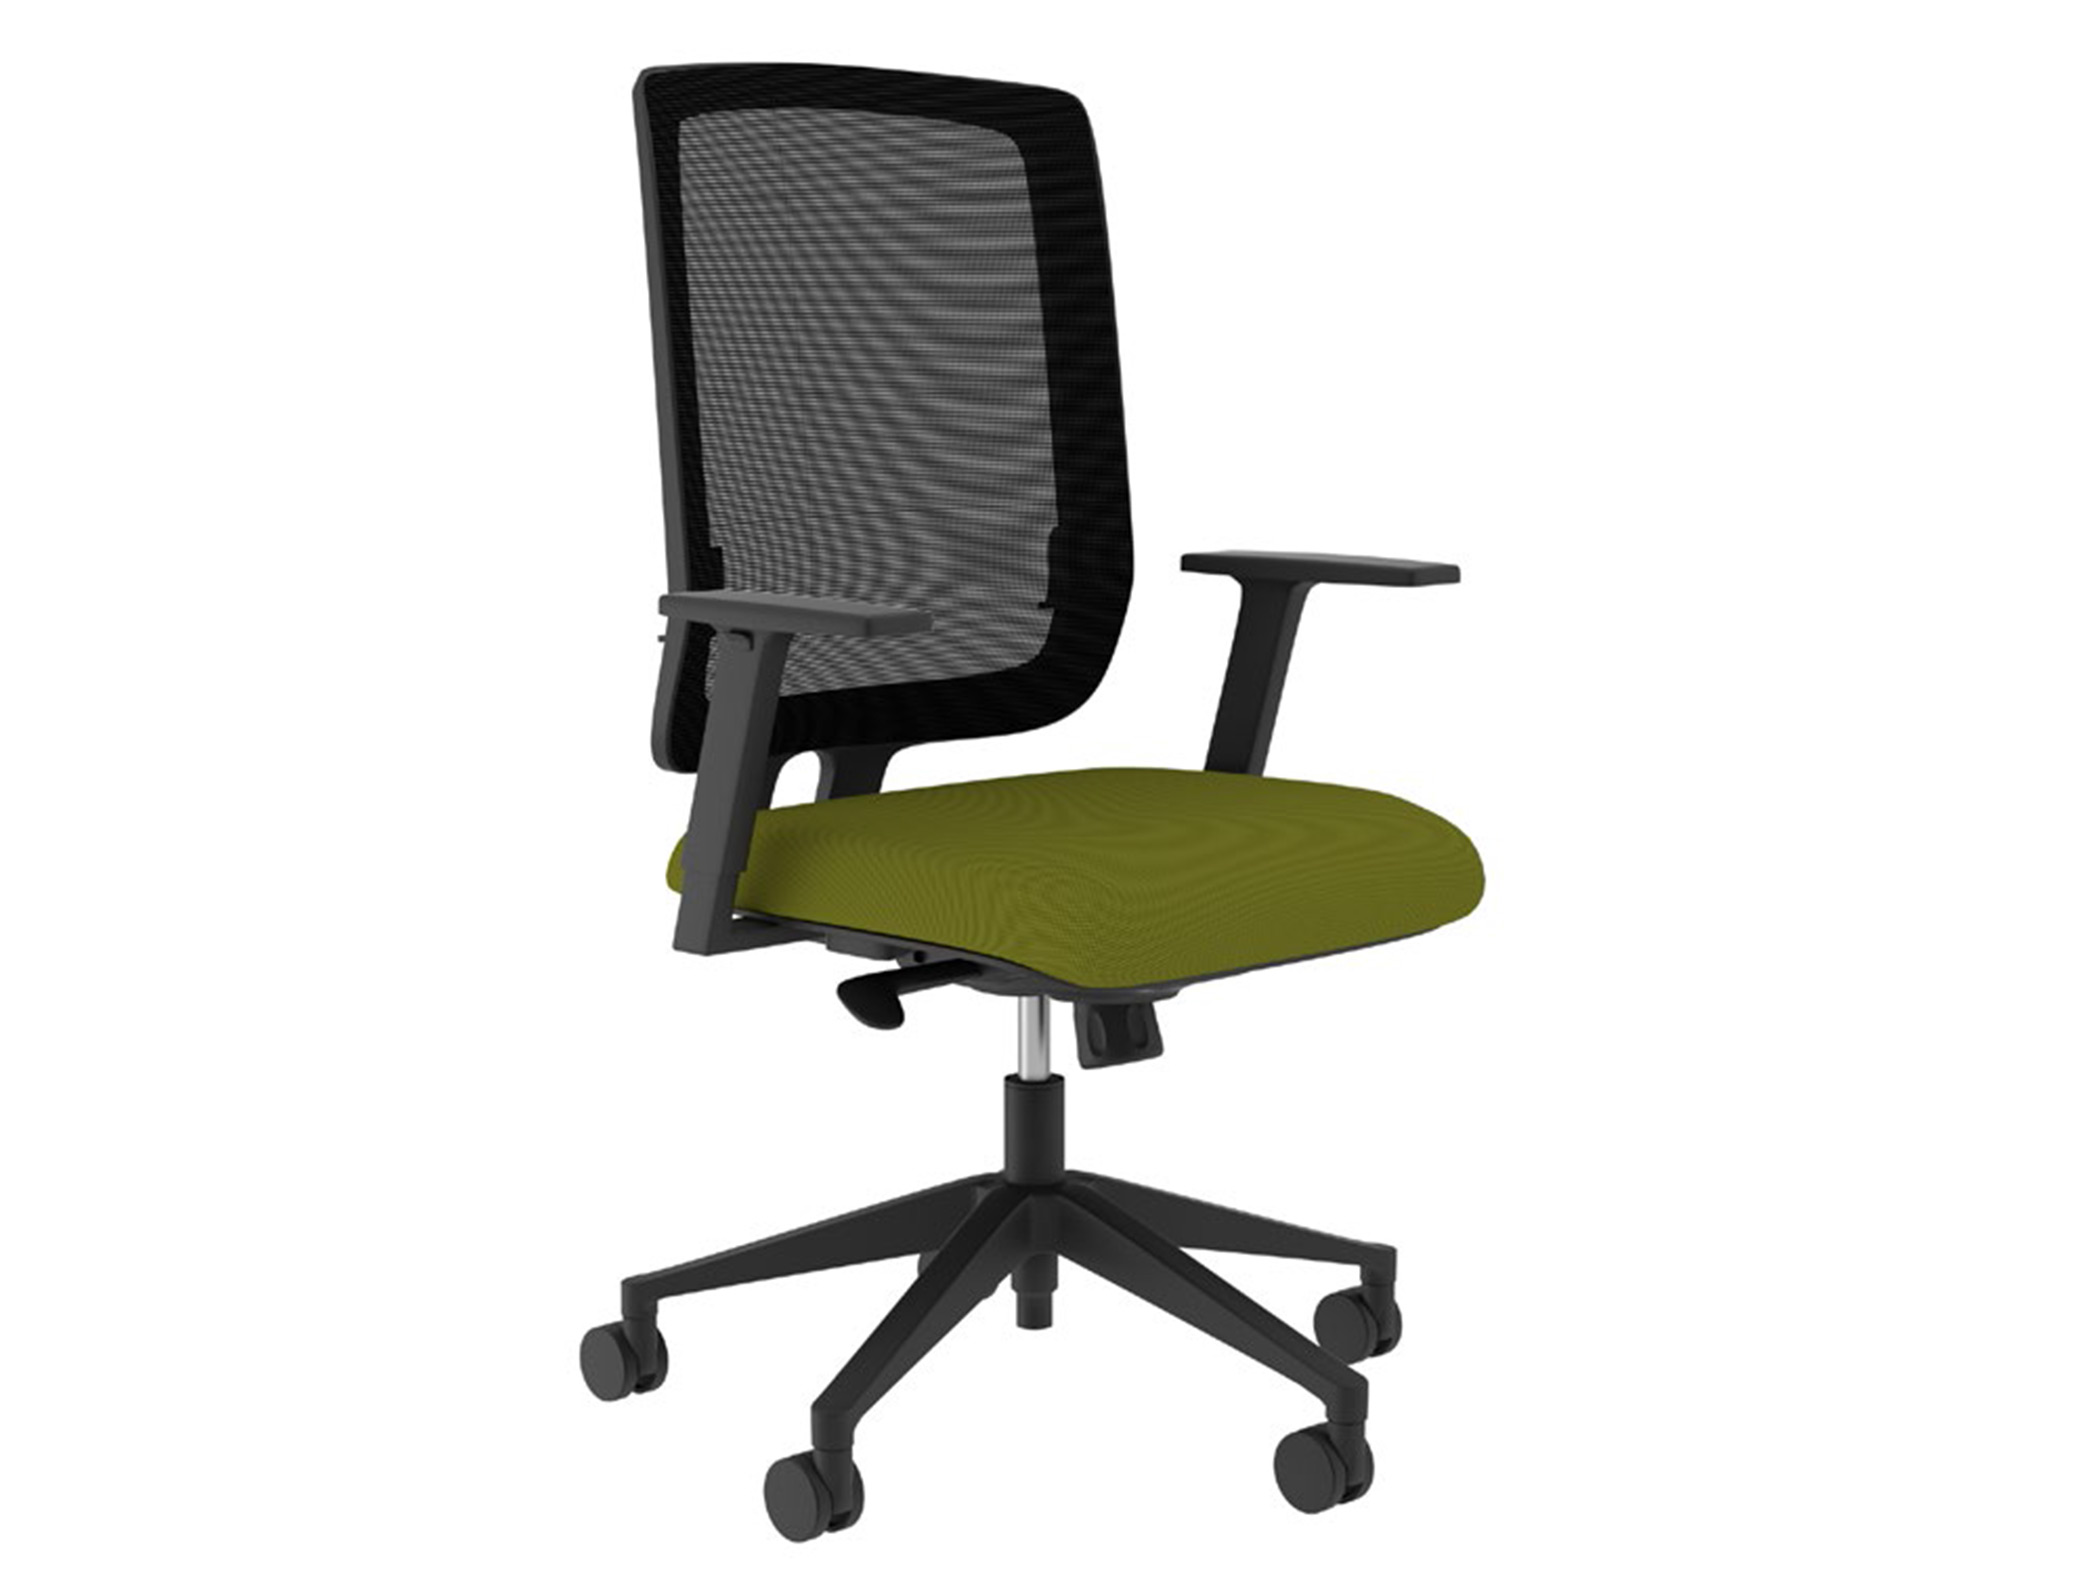 Cubicle Furniture from Compel - Opti task chair